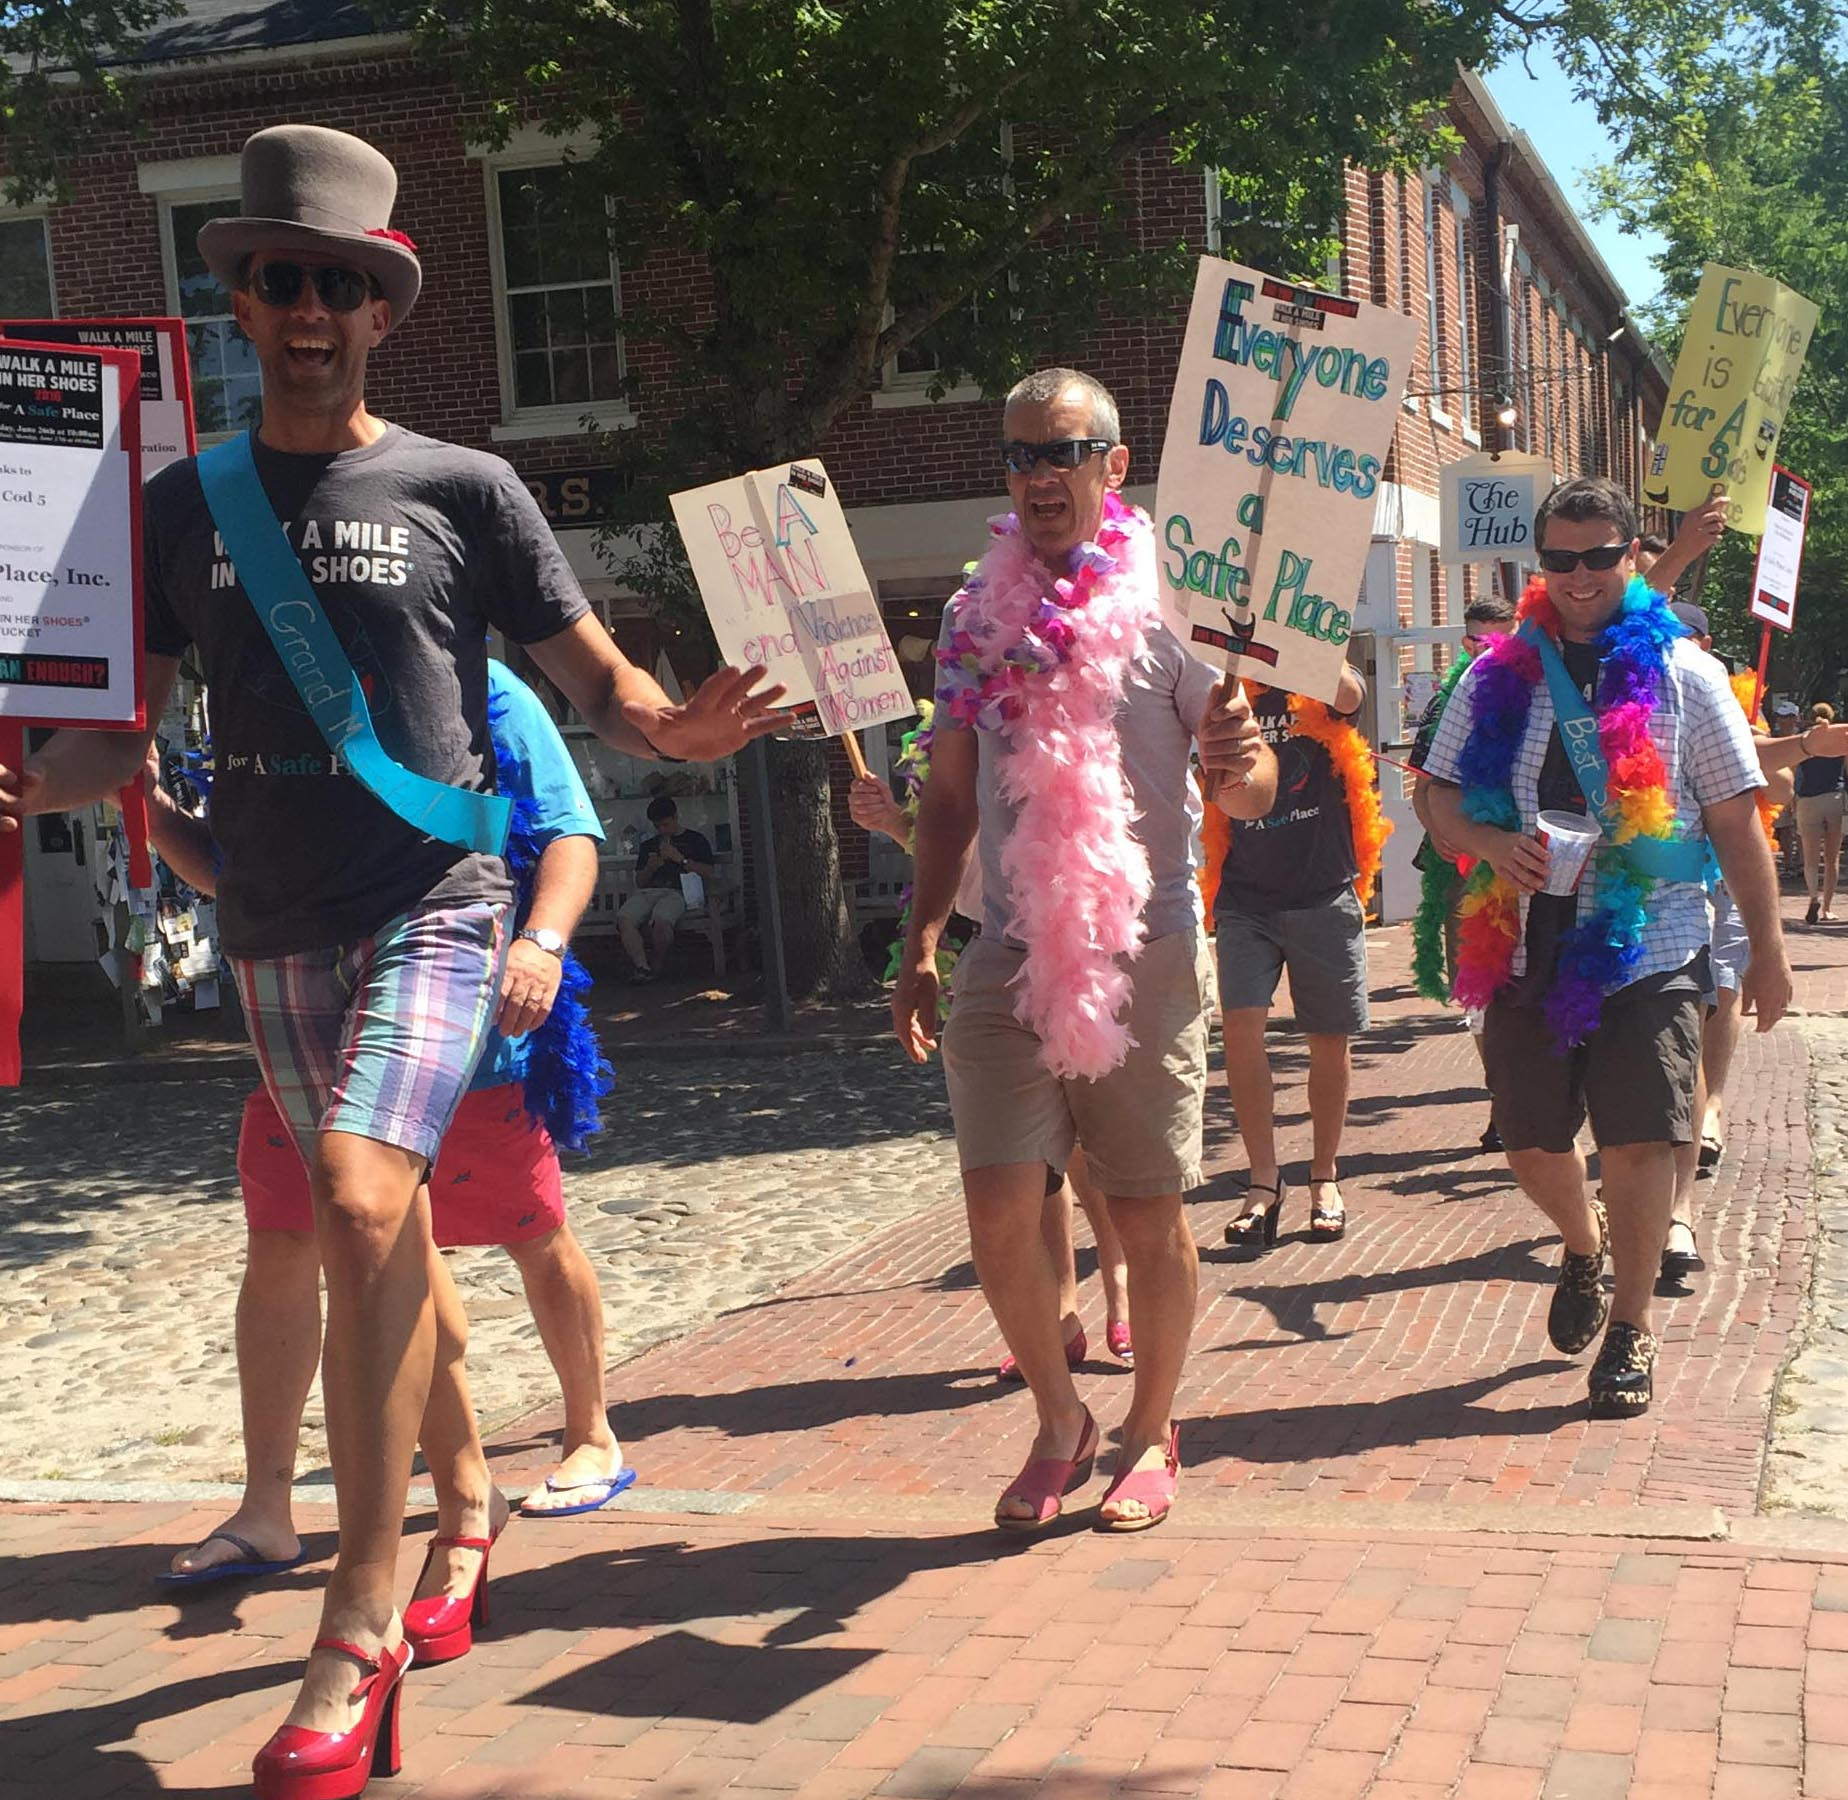 to walk a mile in her Walk a mile in her shoes is a campaign where men march a mile in high heel shoes to raise awareness about sexual assault and domestic violence senior matt hatchel, member of alpha tau omega, said he wants to see collegiate men as allies in the fight against sexual assault.